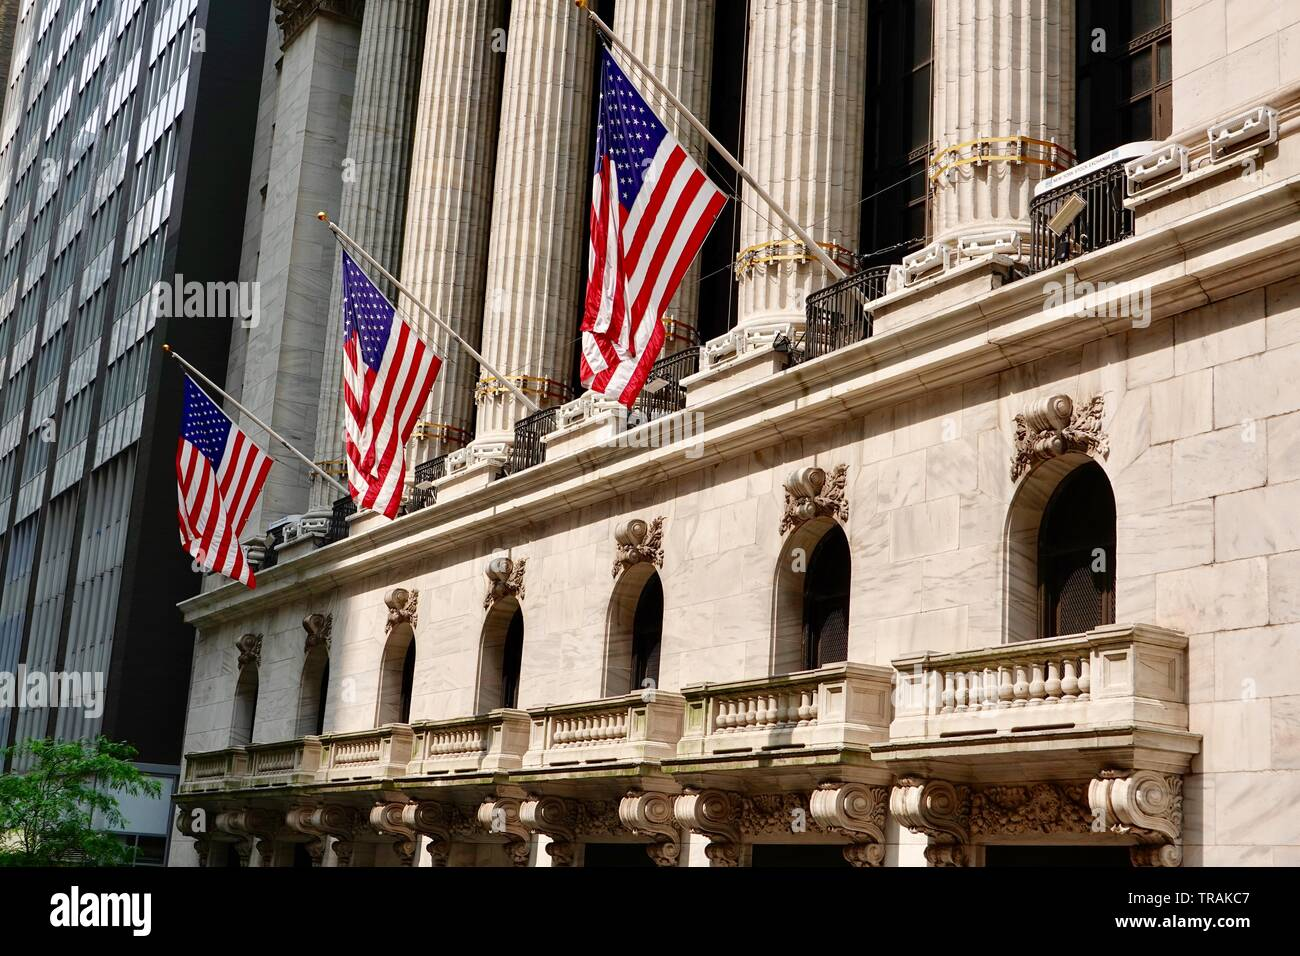 Three American flags fly in front of the New York Stock Exchange, Lower Manhattan, New York, NY, USA - Stock Image